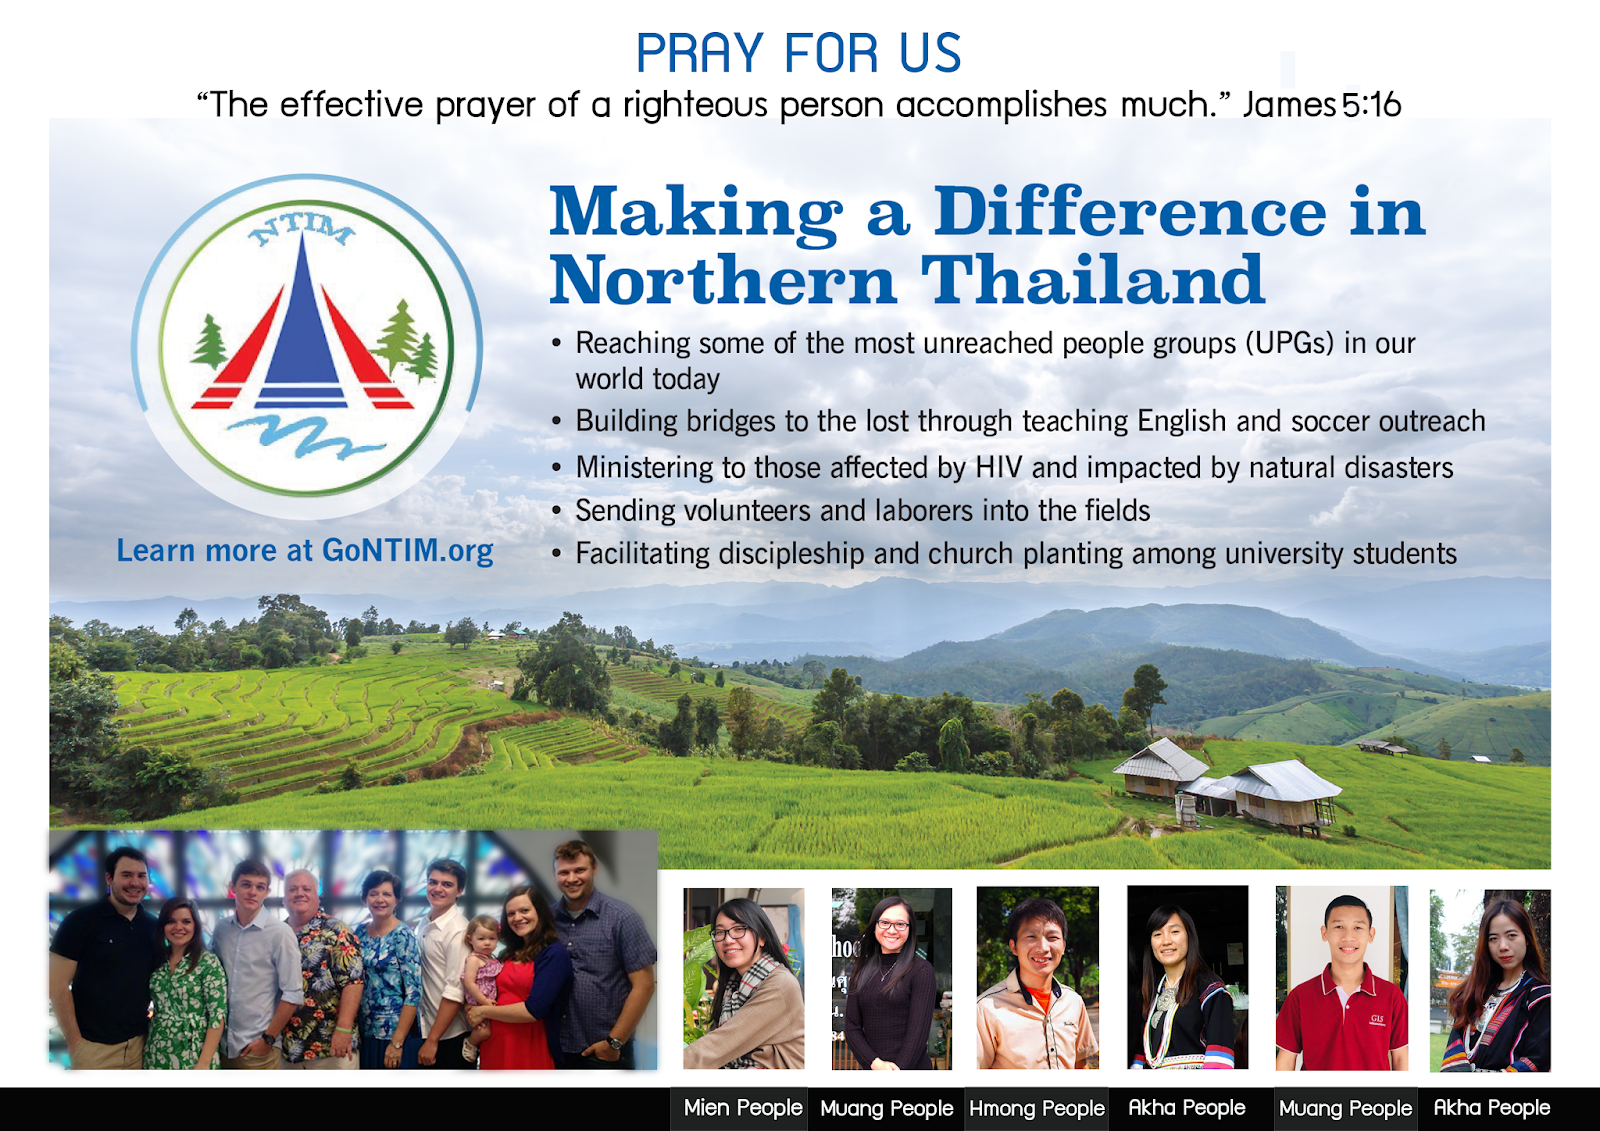 Joining God In His Work of Redemption in Thailand Through